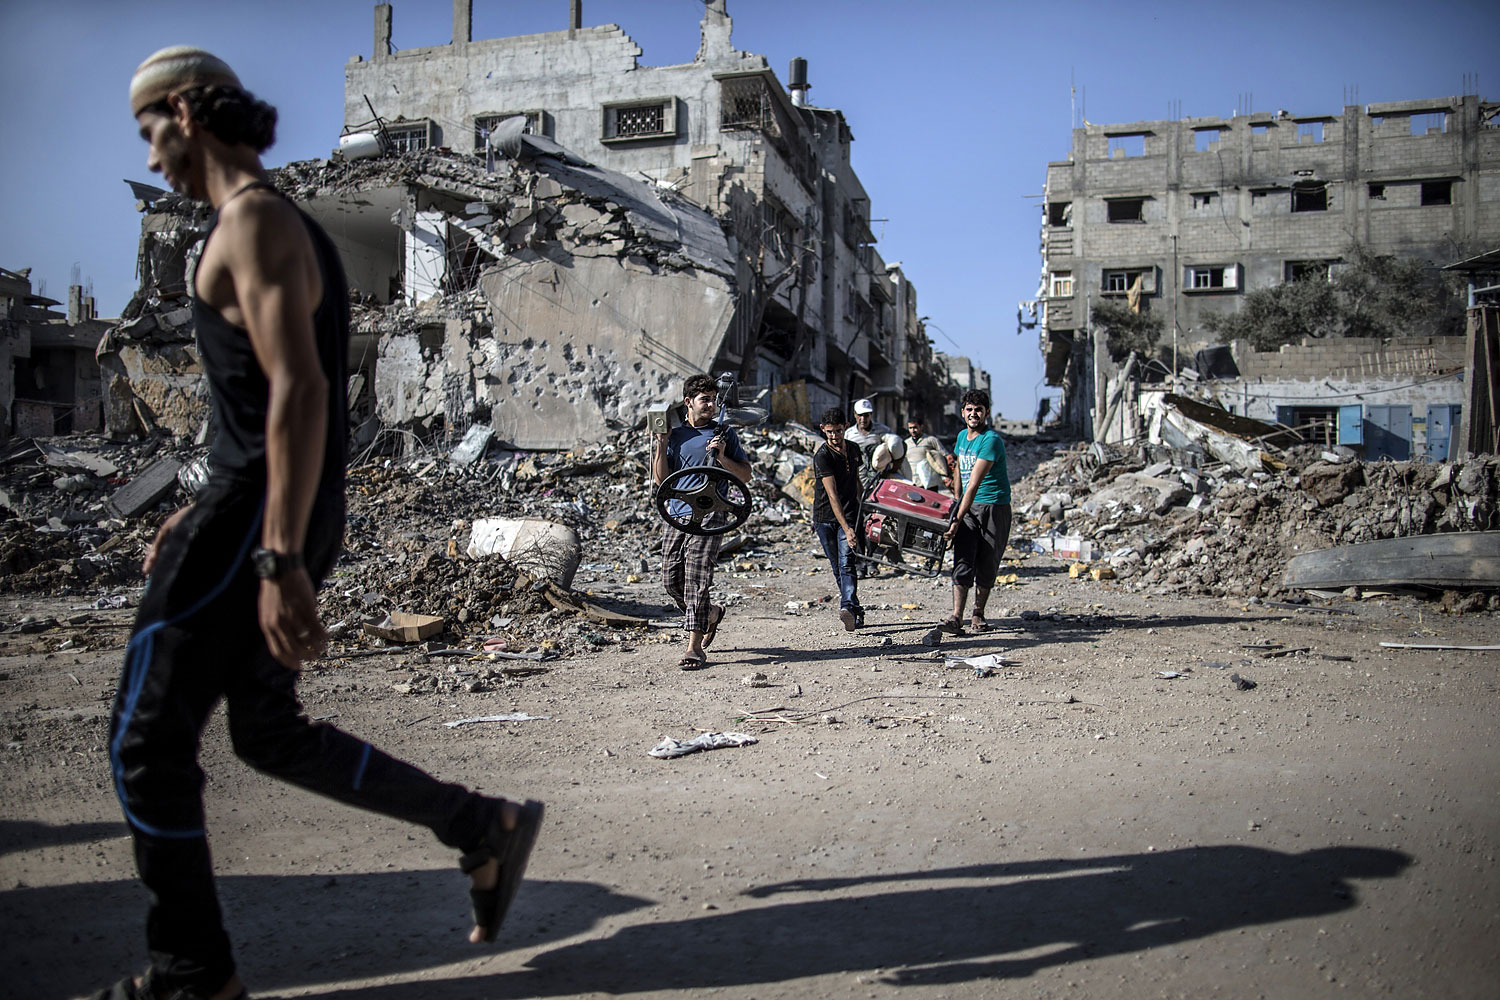 Palestinians carry items and belongings they found in the rubble of destroyed buildings on July 27, 2014 in the Shejaiya residential district of Gaza City as families returned to find their homes ground into rubble by relentless Israeli tank fire and air strikes.